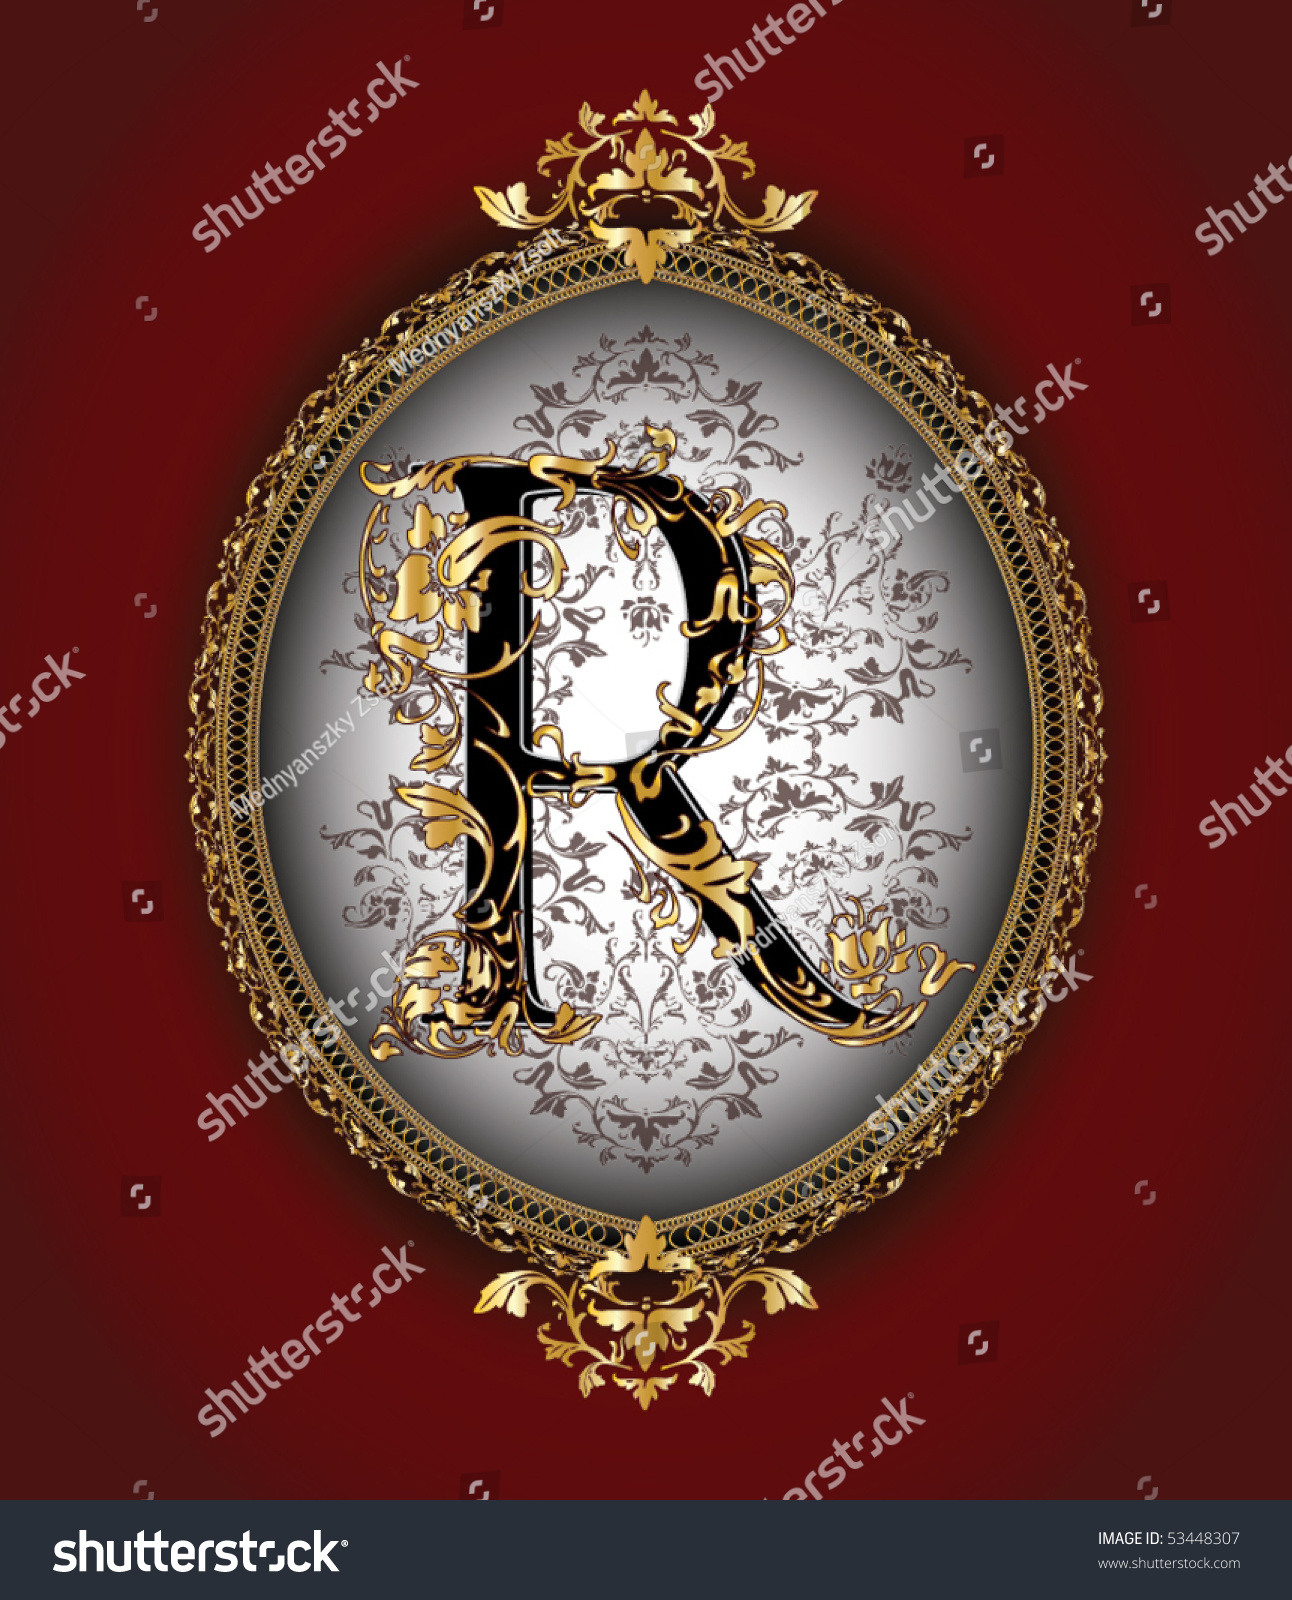 Vintage initials letter r stock vector illustration 53448307